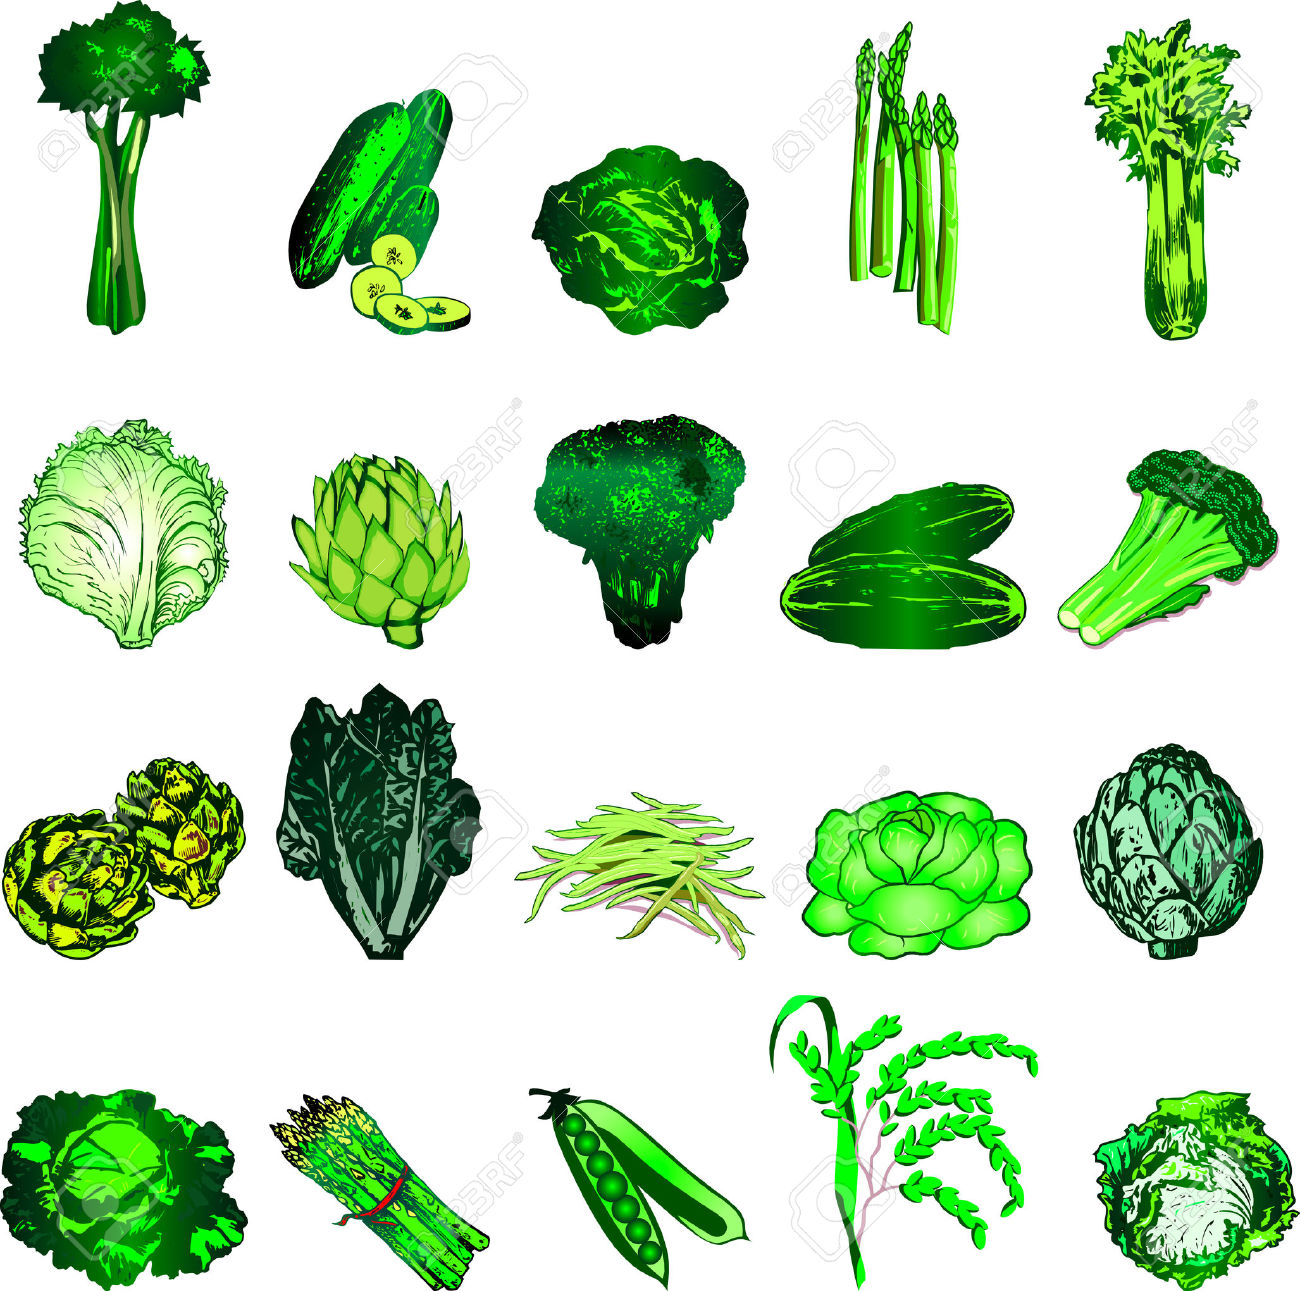 Leafy Vegetables Clipart.